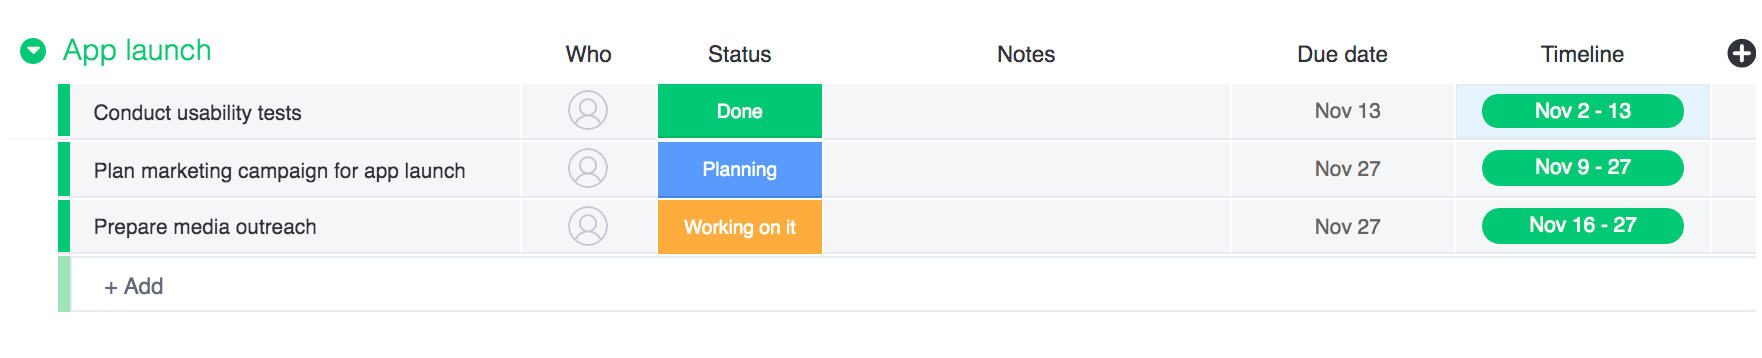 Project schedule example in monday.com